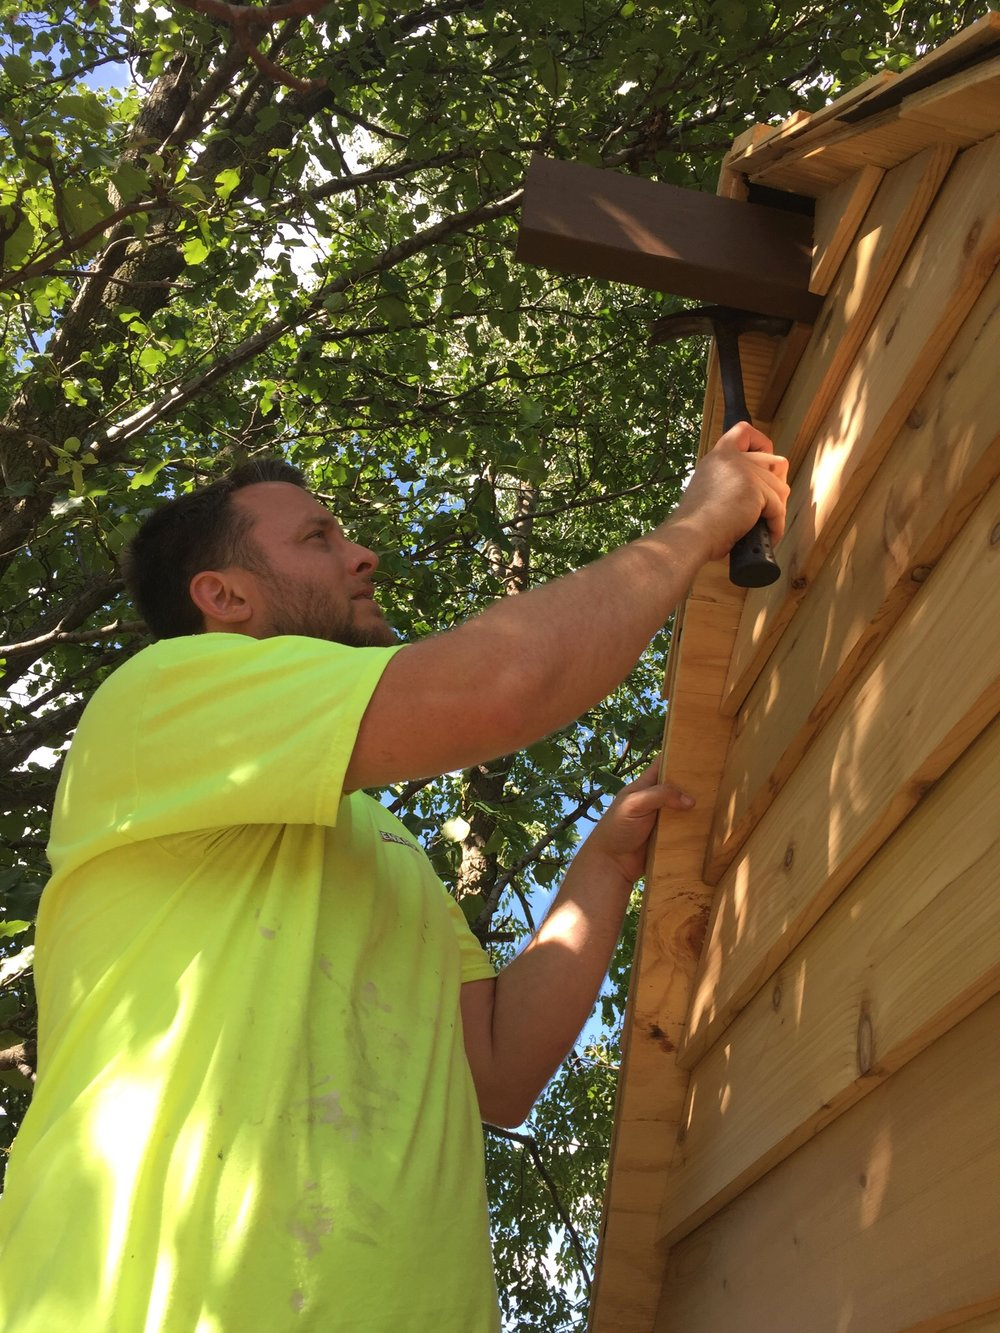 Installing the last piece of cedar siding for the clubhouse treehouse